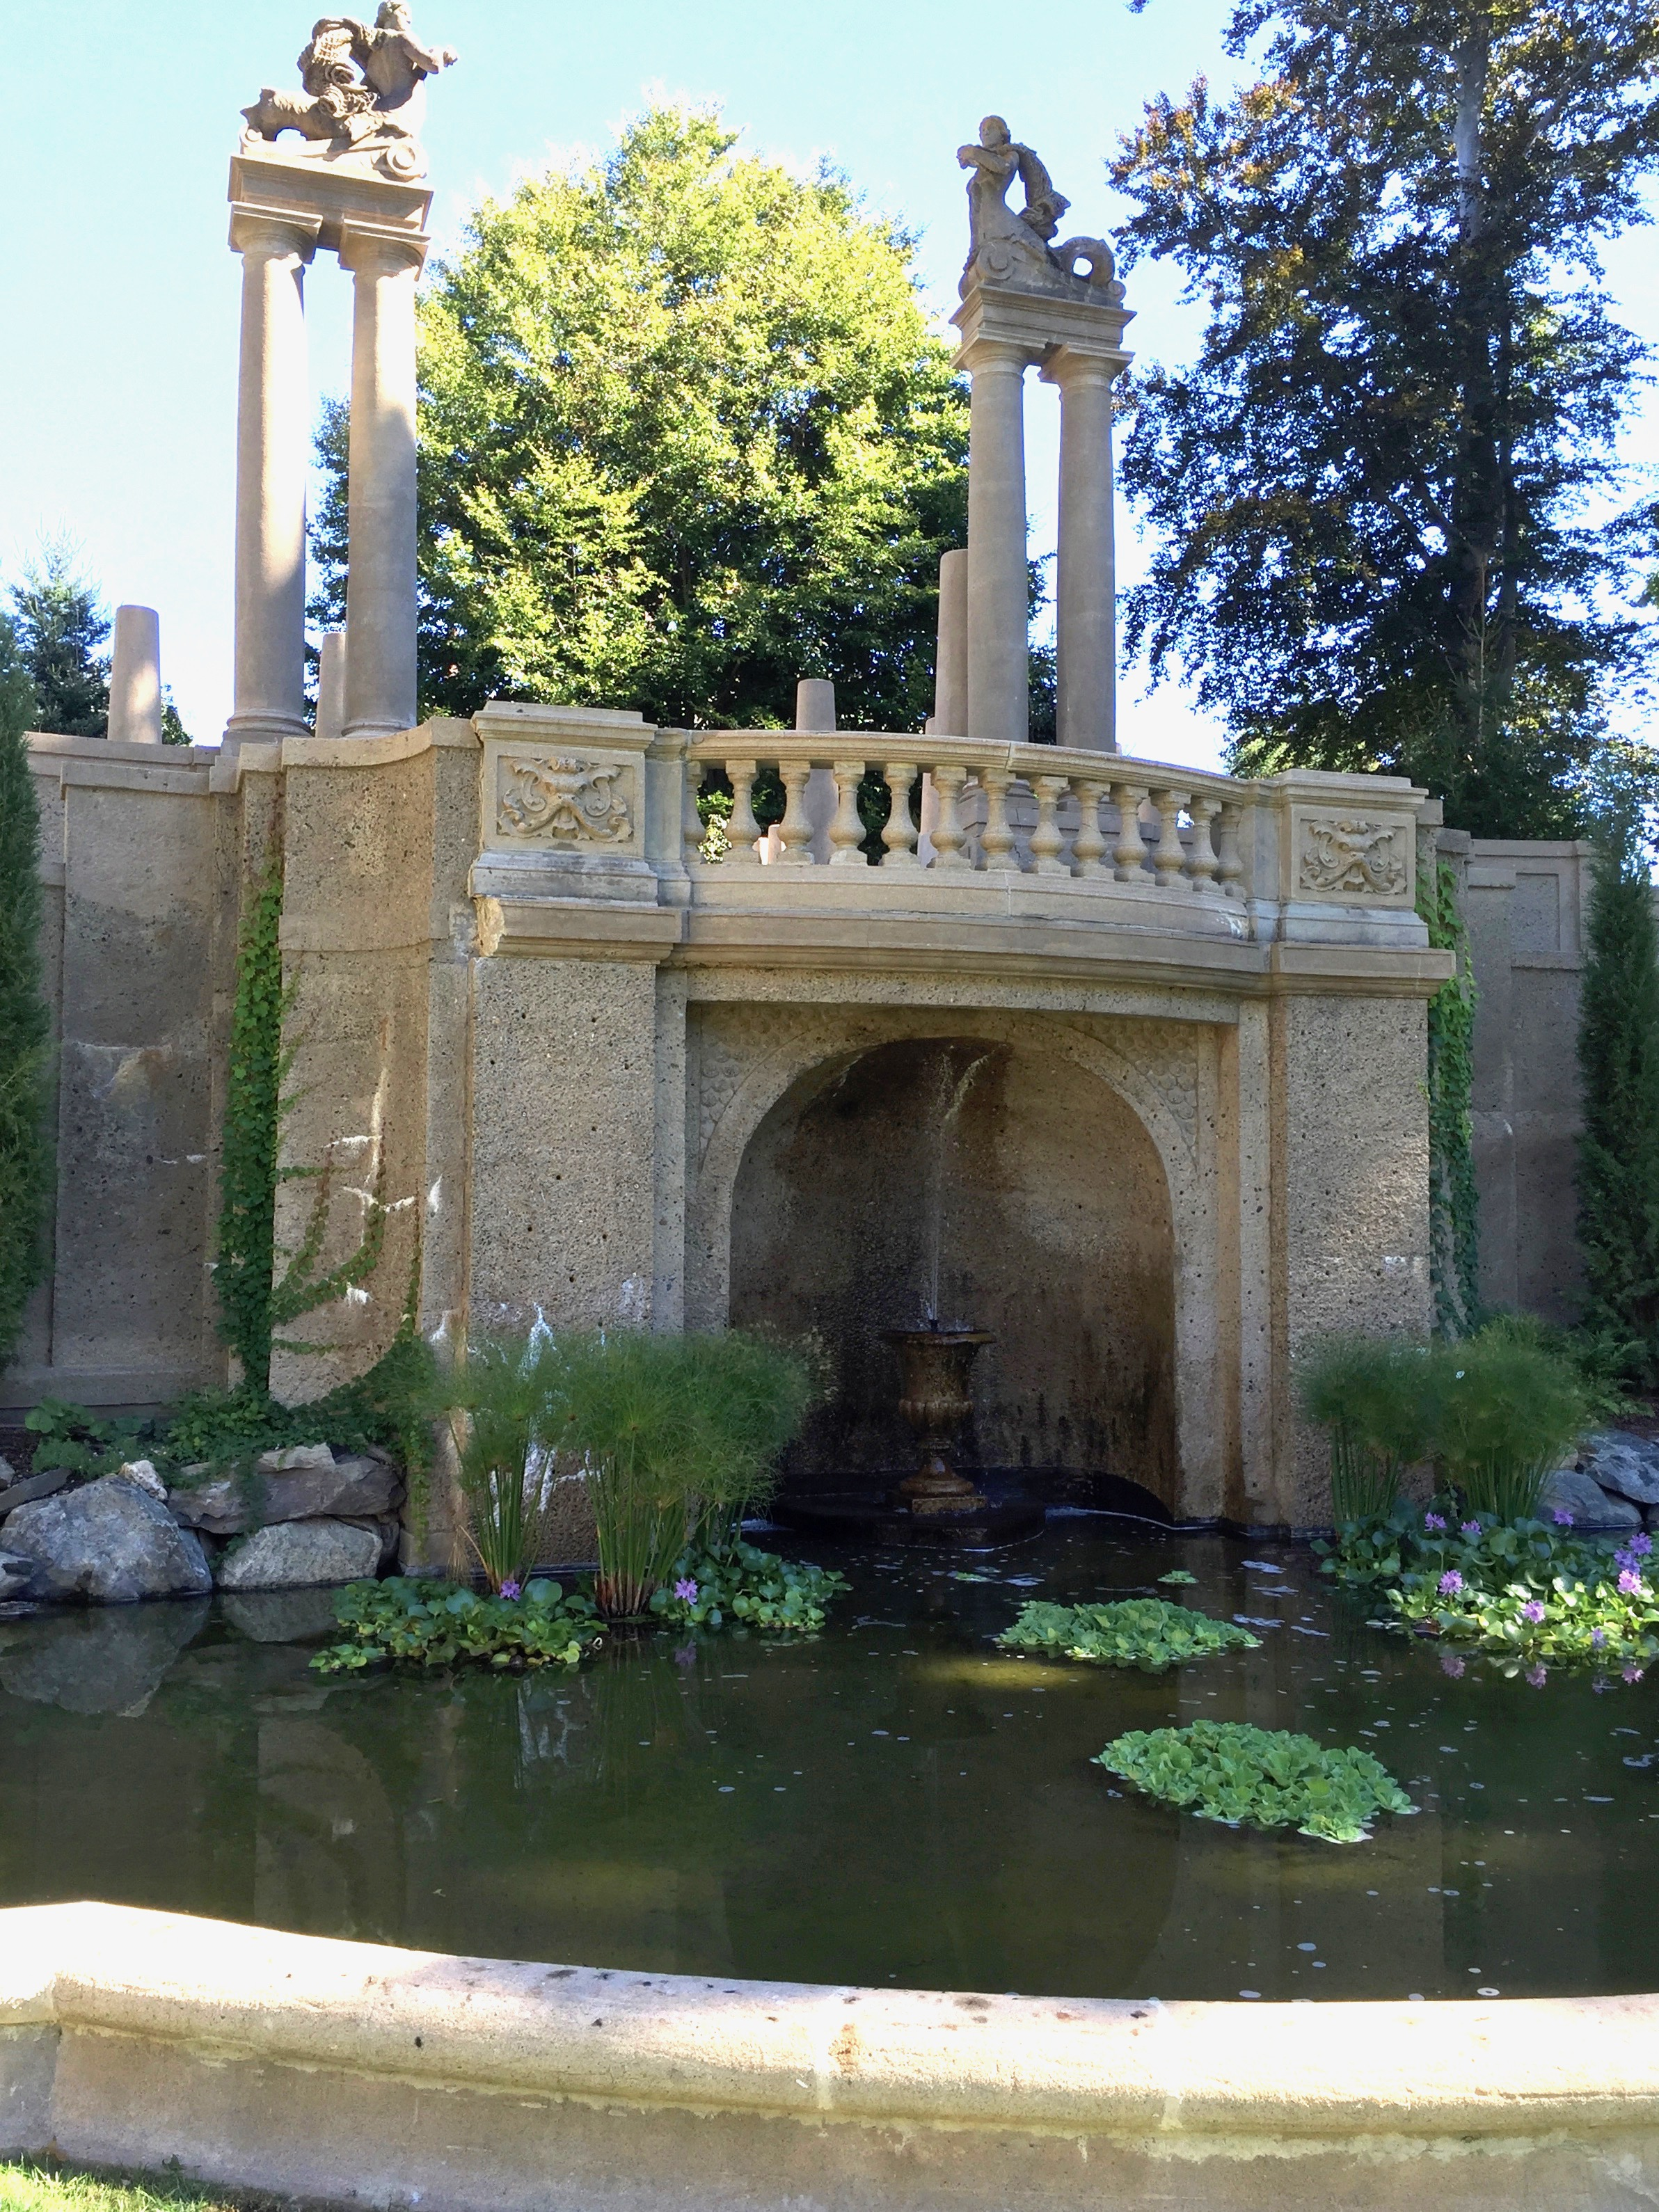 The water fountain at the Crane Estate in Ipswich, MA found in the formal gardens.